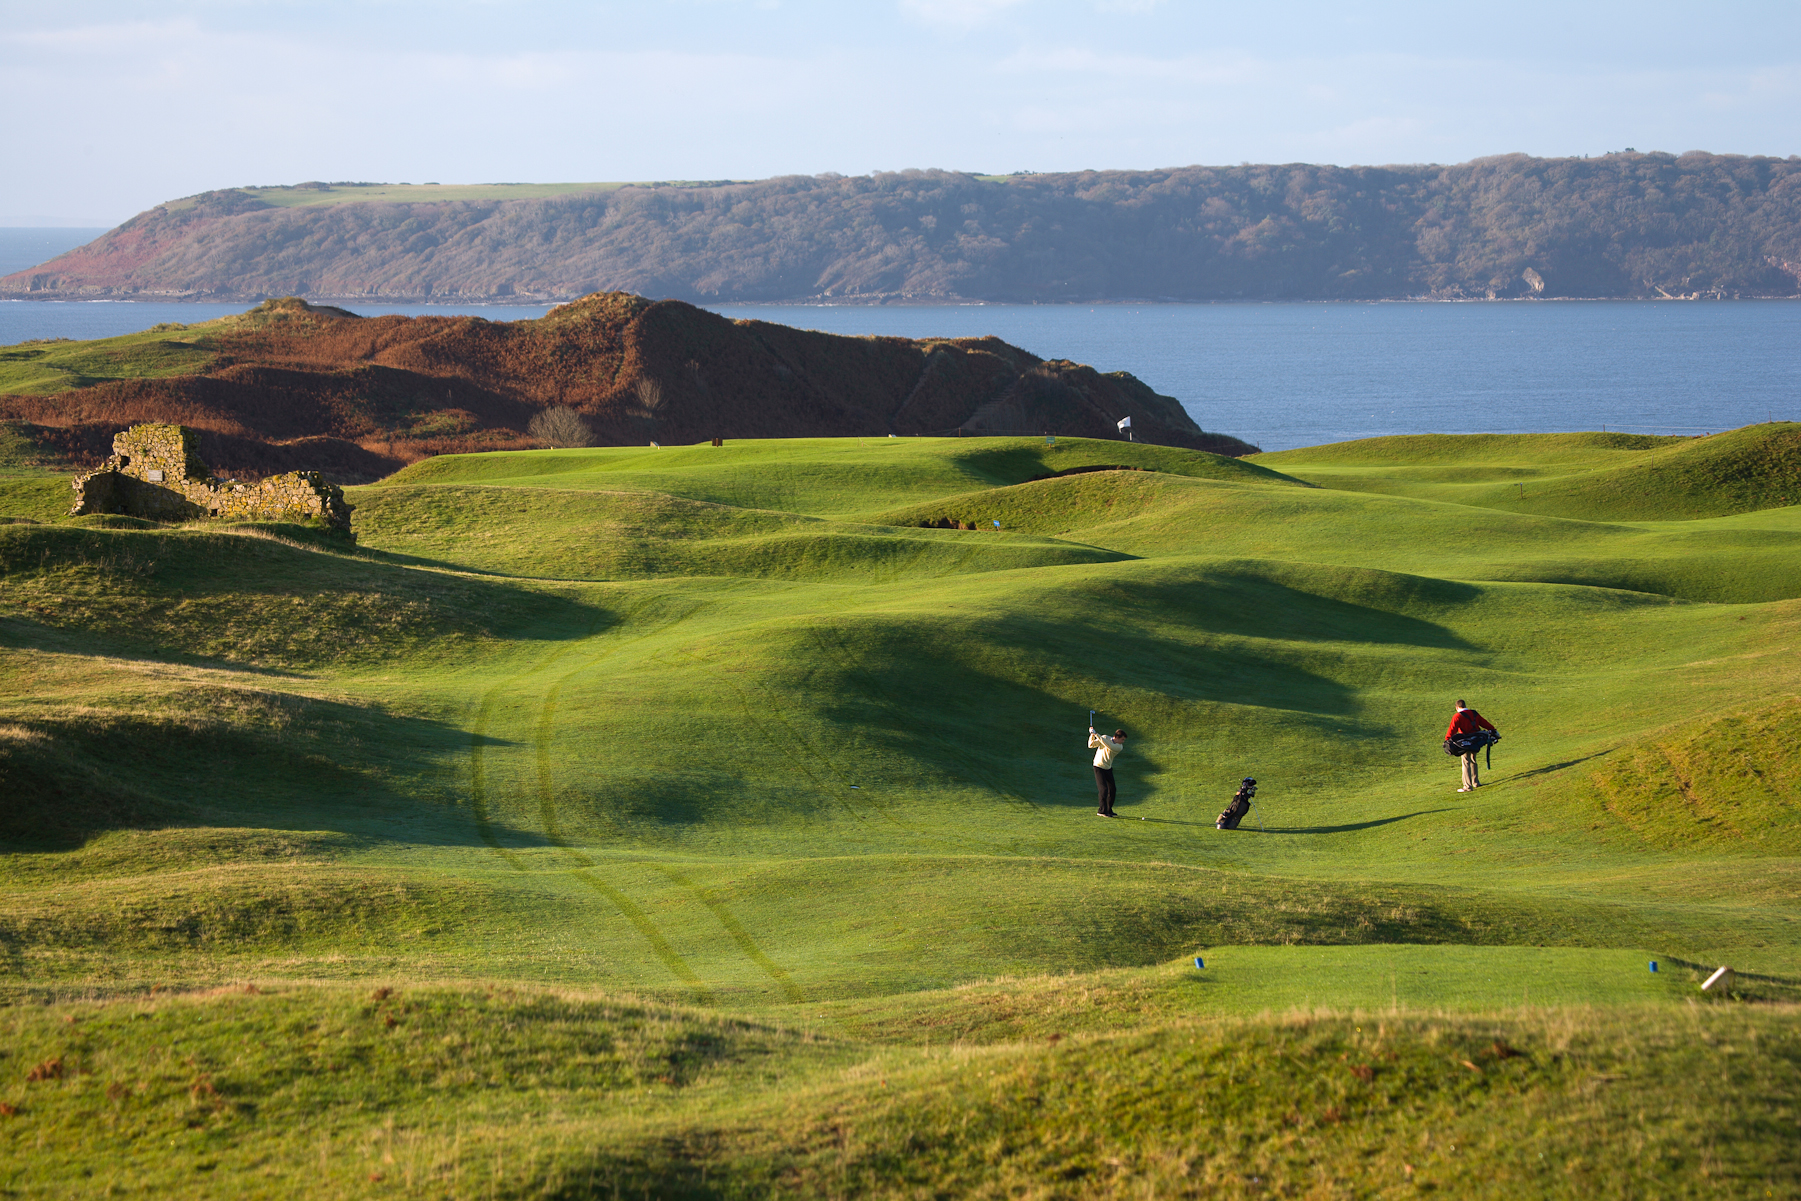 Overview of golf course named Pennard Golf Club